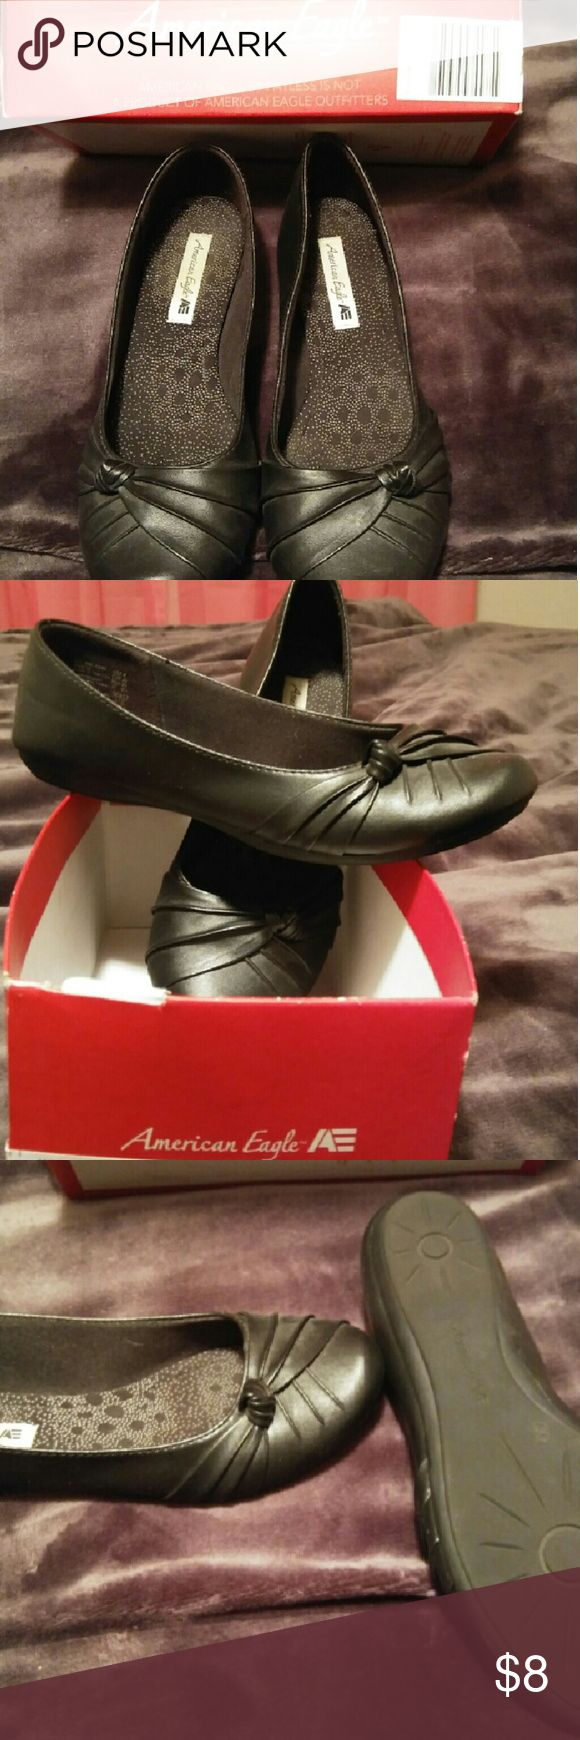 Black flats American Eagle, bought from Payless Shoe Source. Great condition! Worn once. American Eagle by Payless Shoes Flats & Loafers